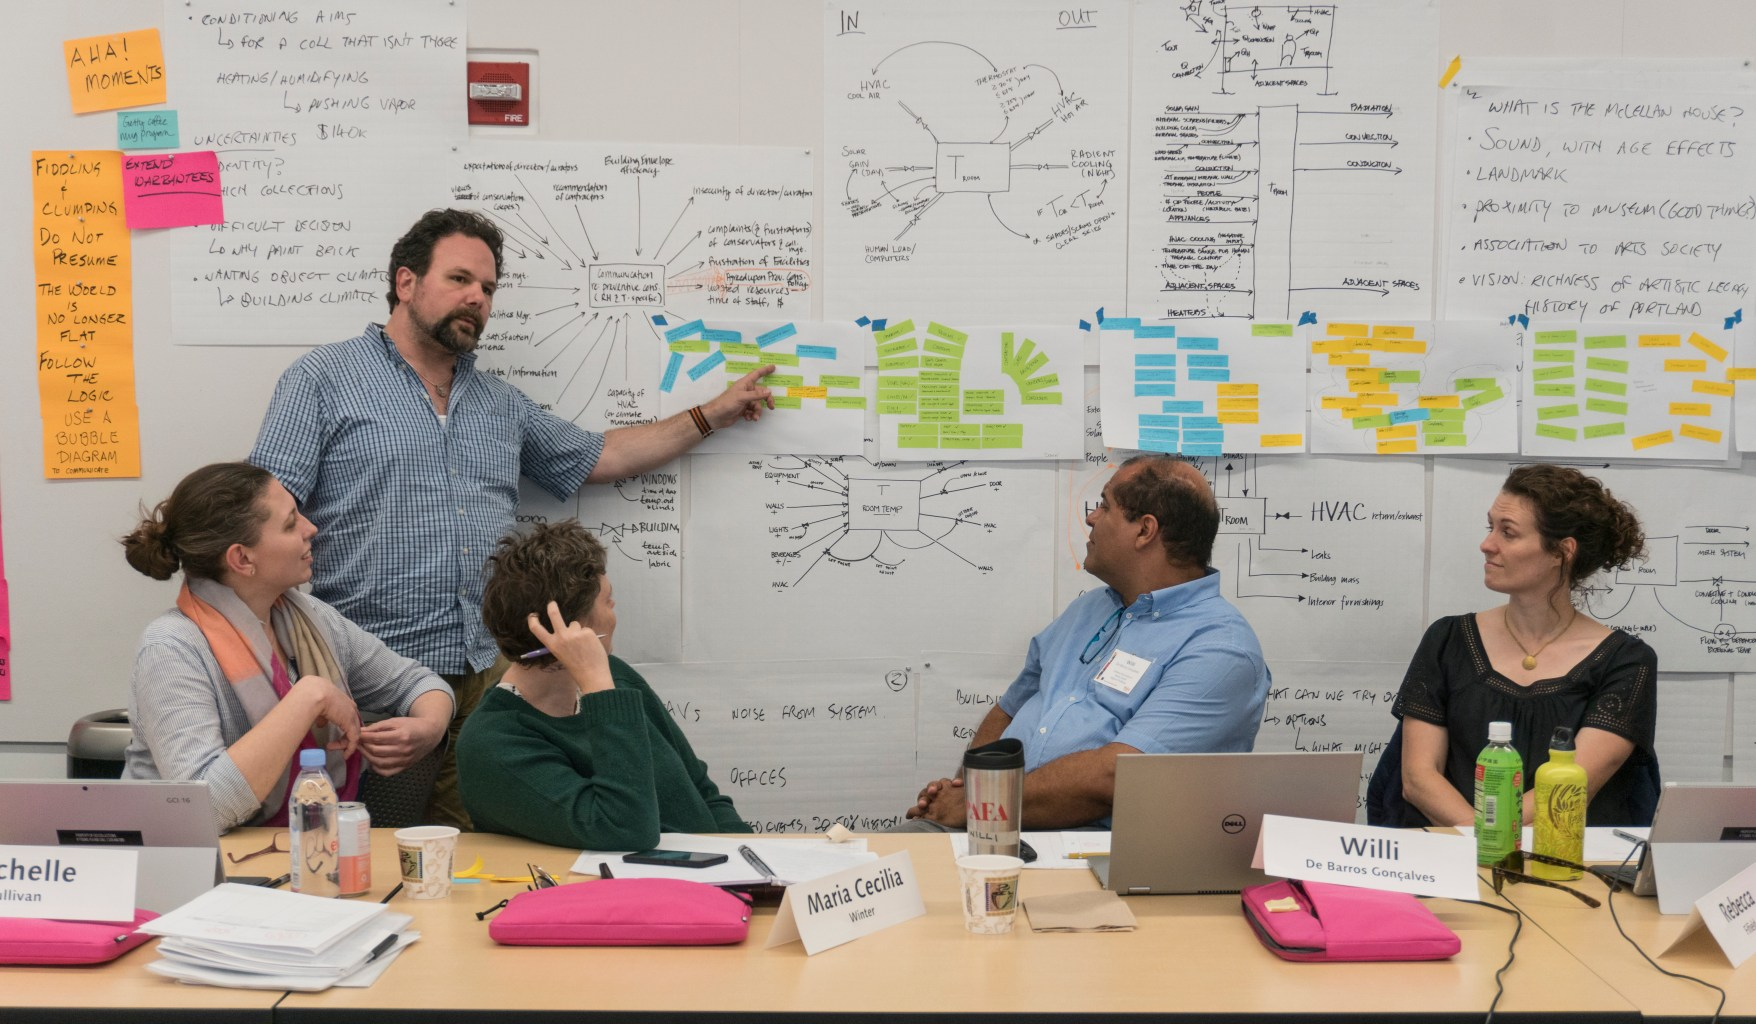 A group of people look at diagrams on a whiteboard.